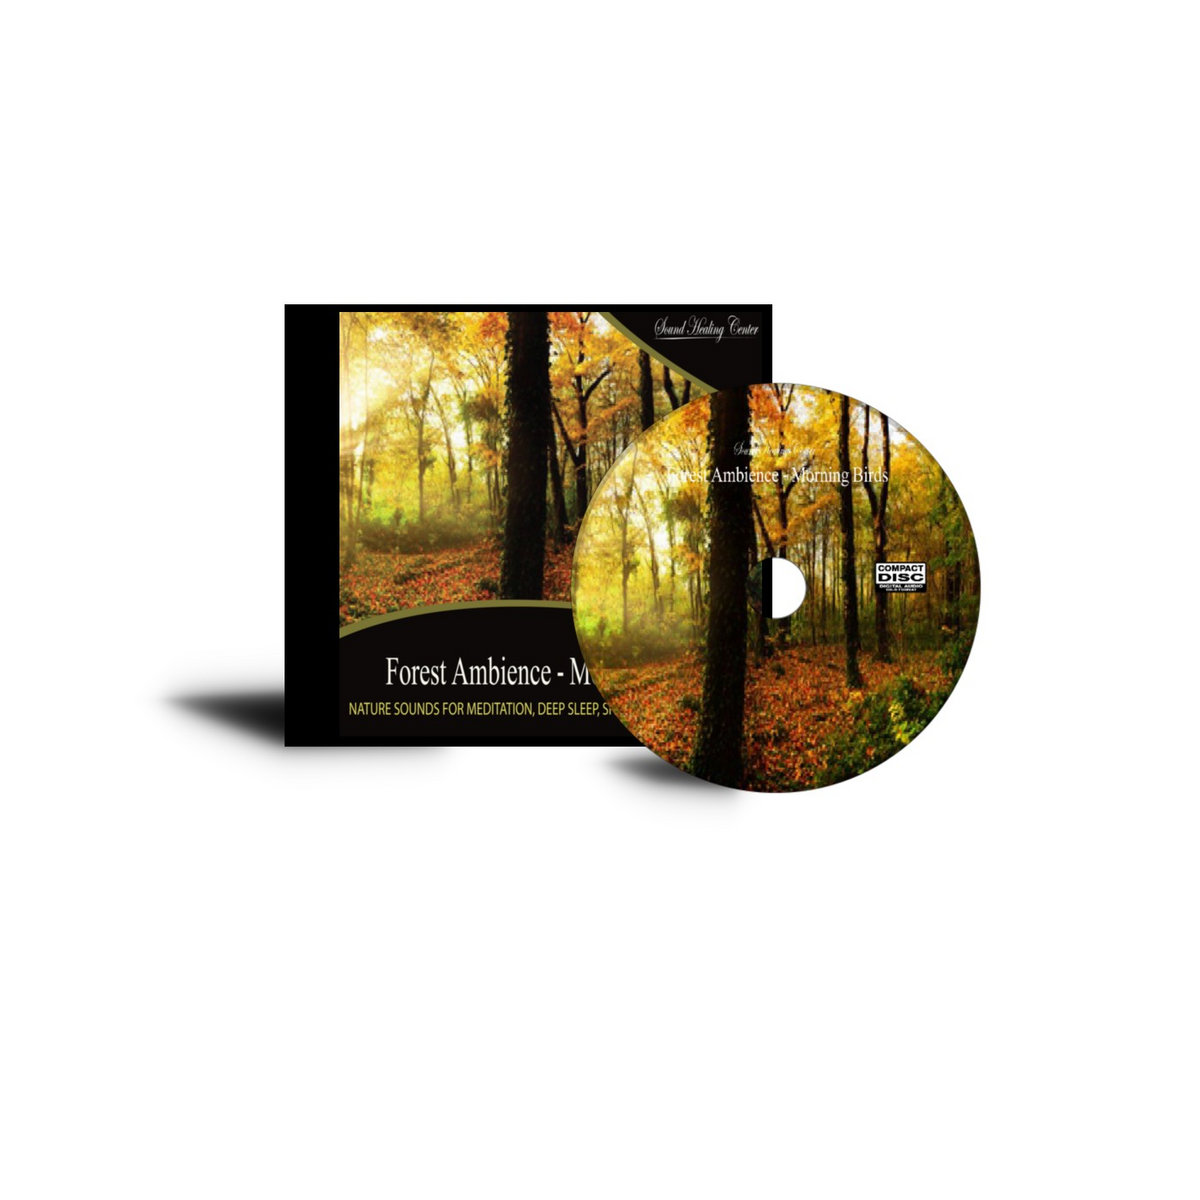 Forest Ambience - Morning Birds: Nature Sounds for